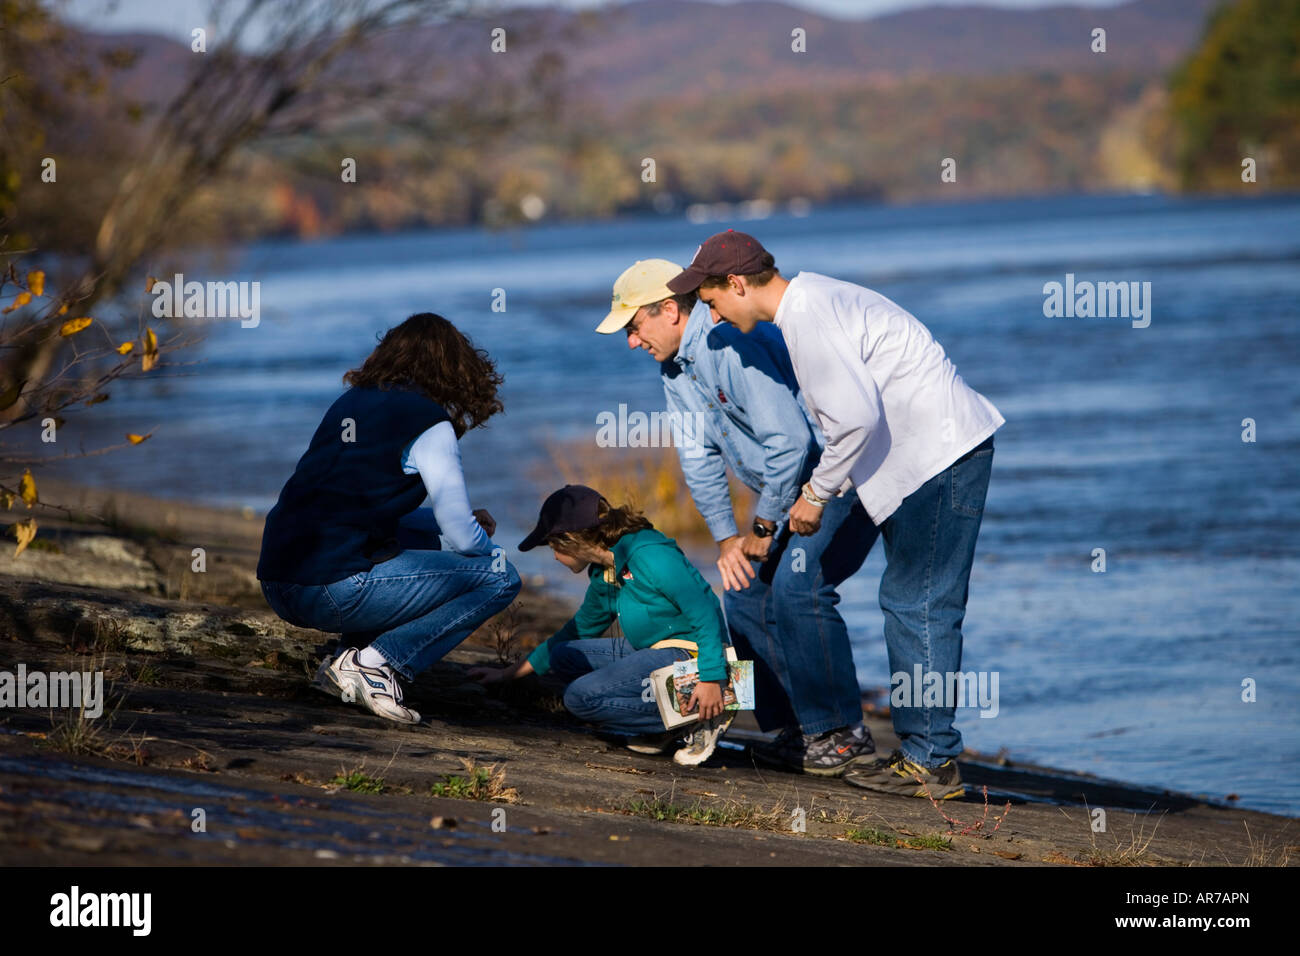 A family studies nature on the banks of the Connecticut River in Holyoke, Massachusetts. Stock Photo